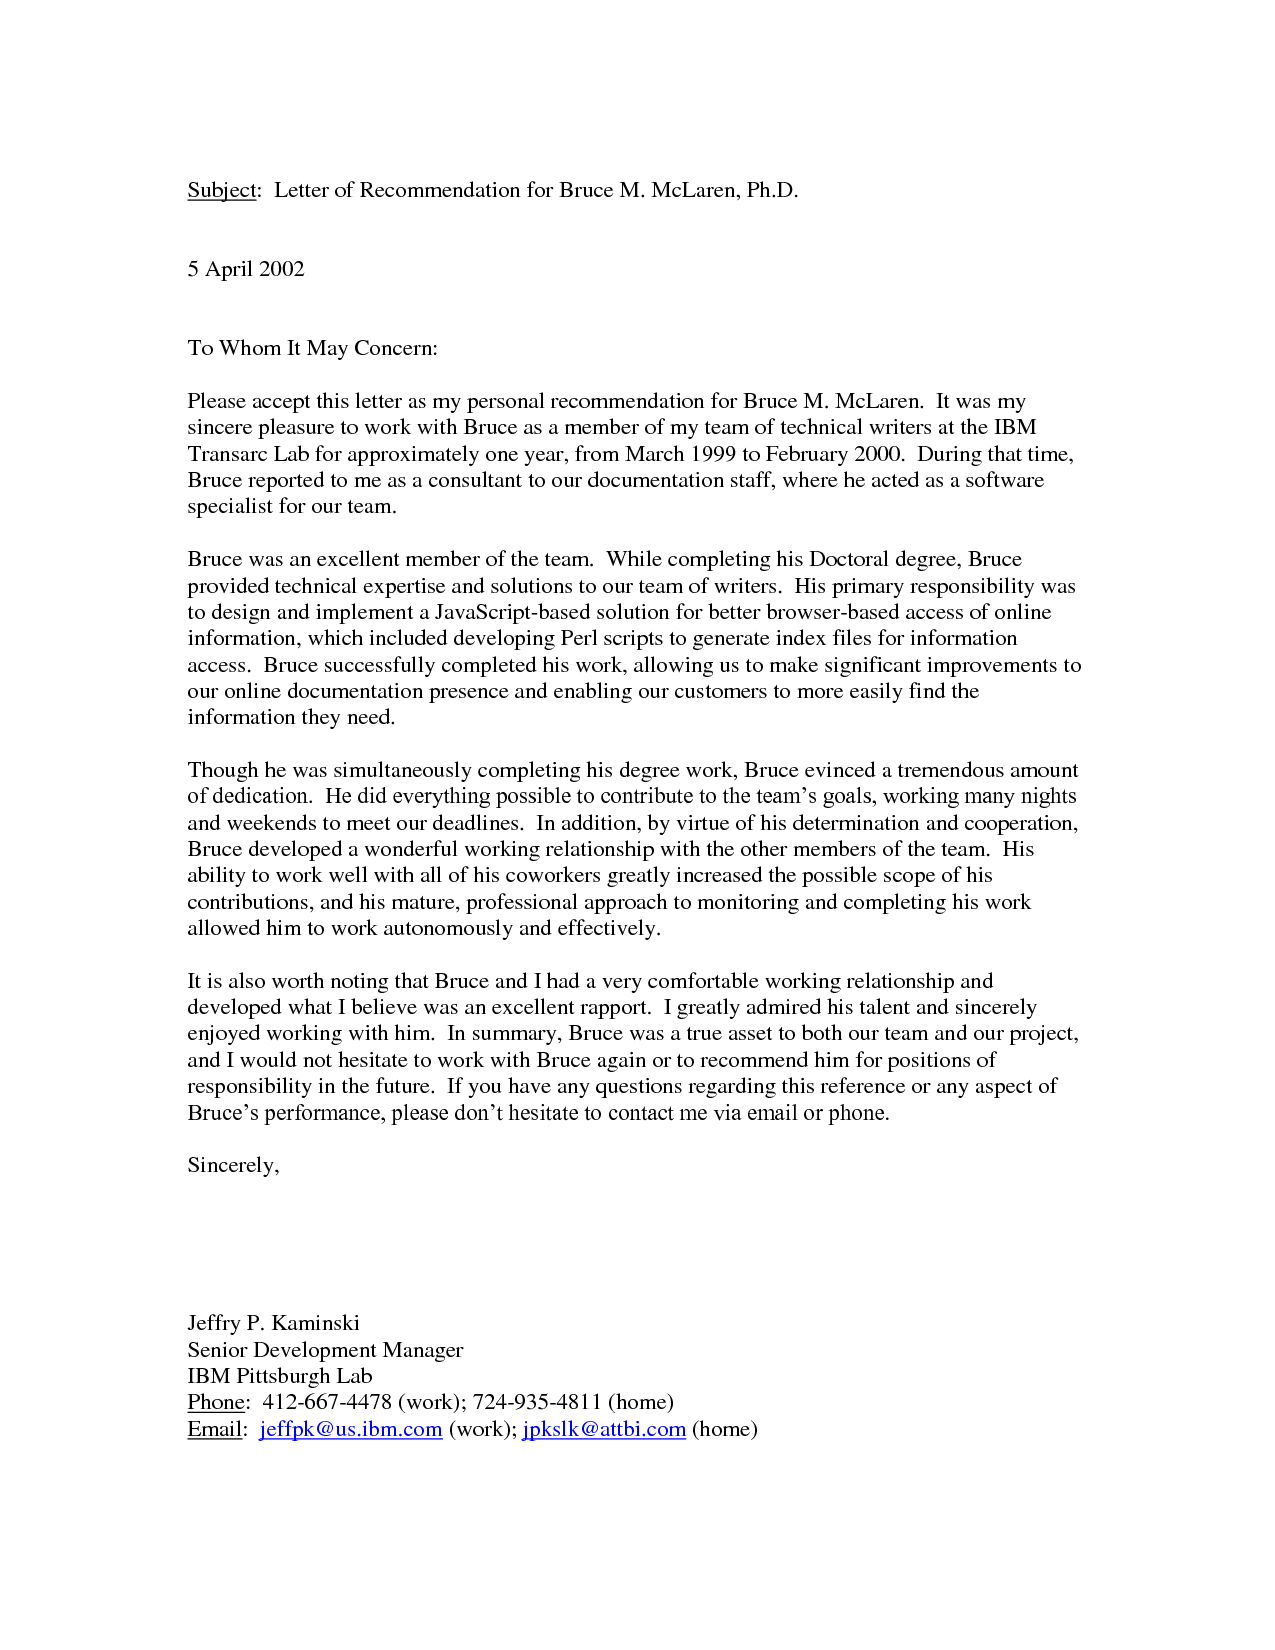 Personal Reference Letter Of RecommendationLetter Of Recommendation Formal Letter Sample  Cover